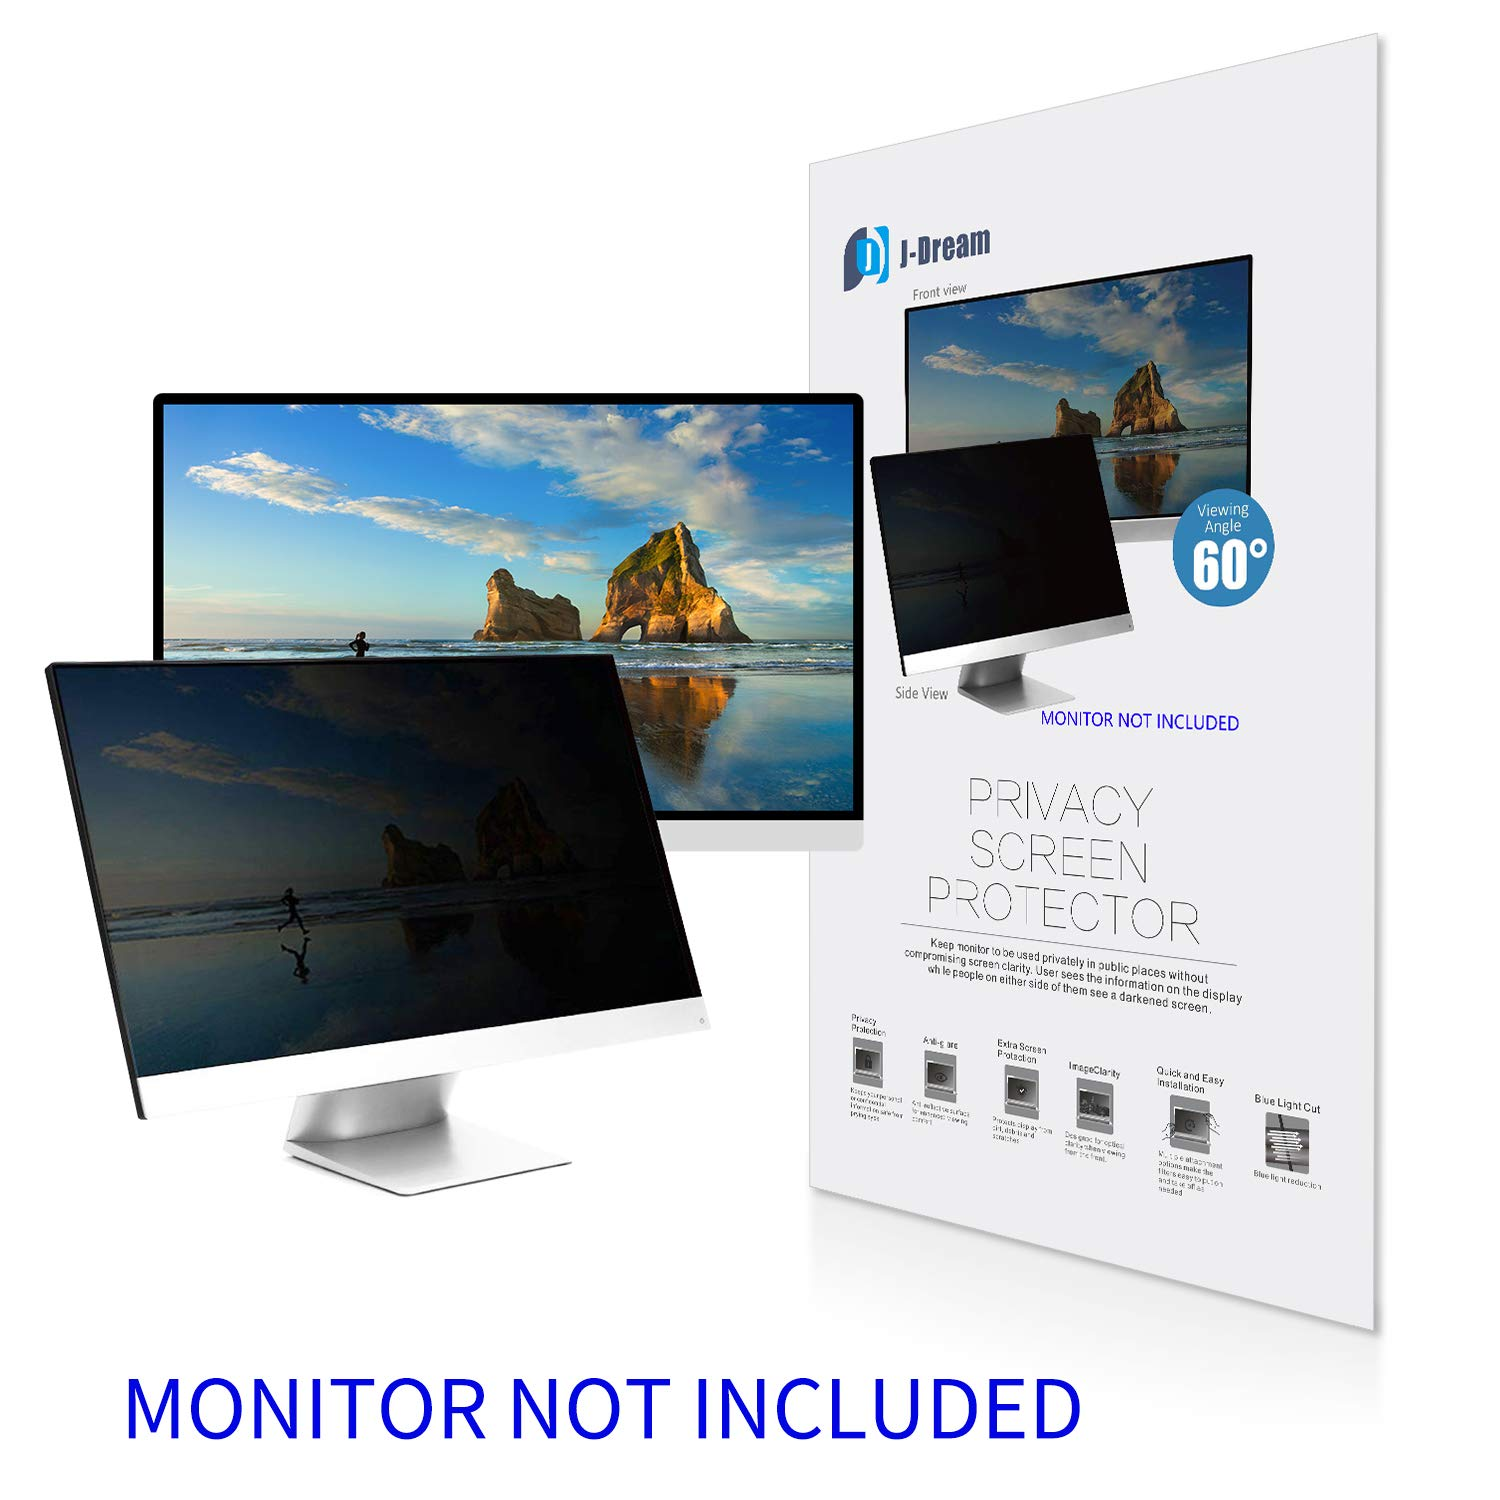 20 Inch Privacy Screen Filter for Widescreen Monitor (16:9 Aspect Ratio) - Please Measure Carefully!